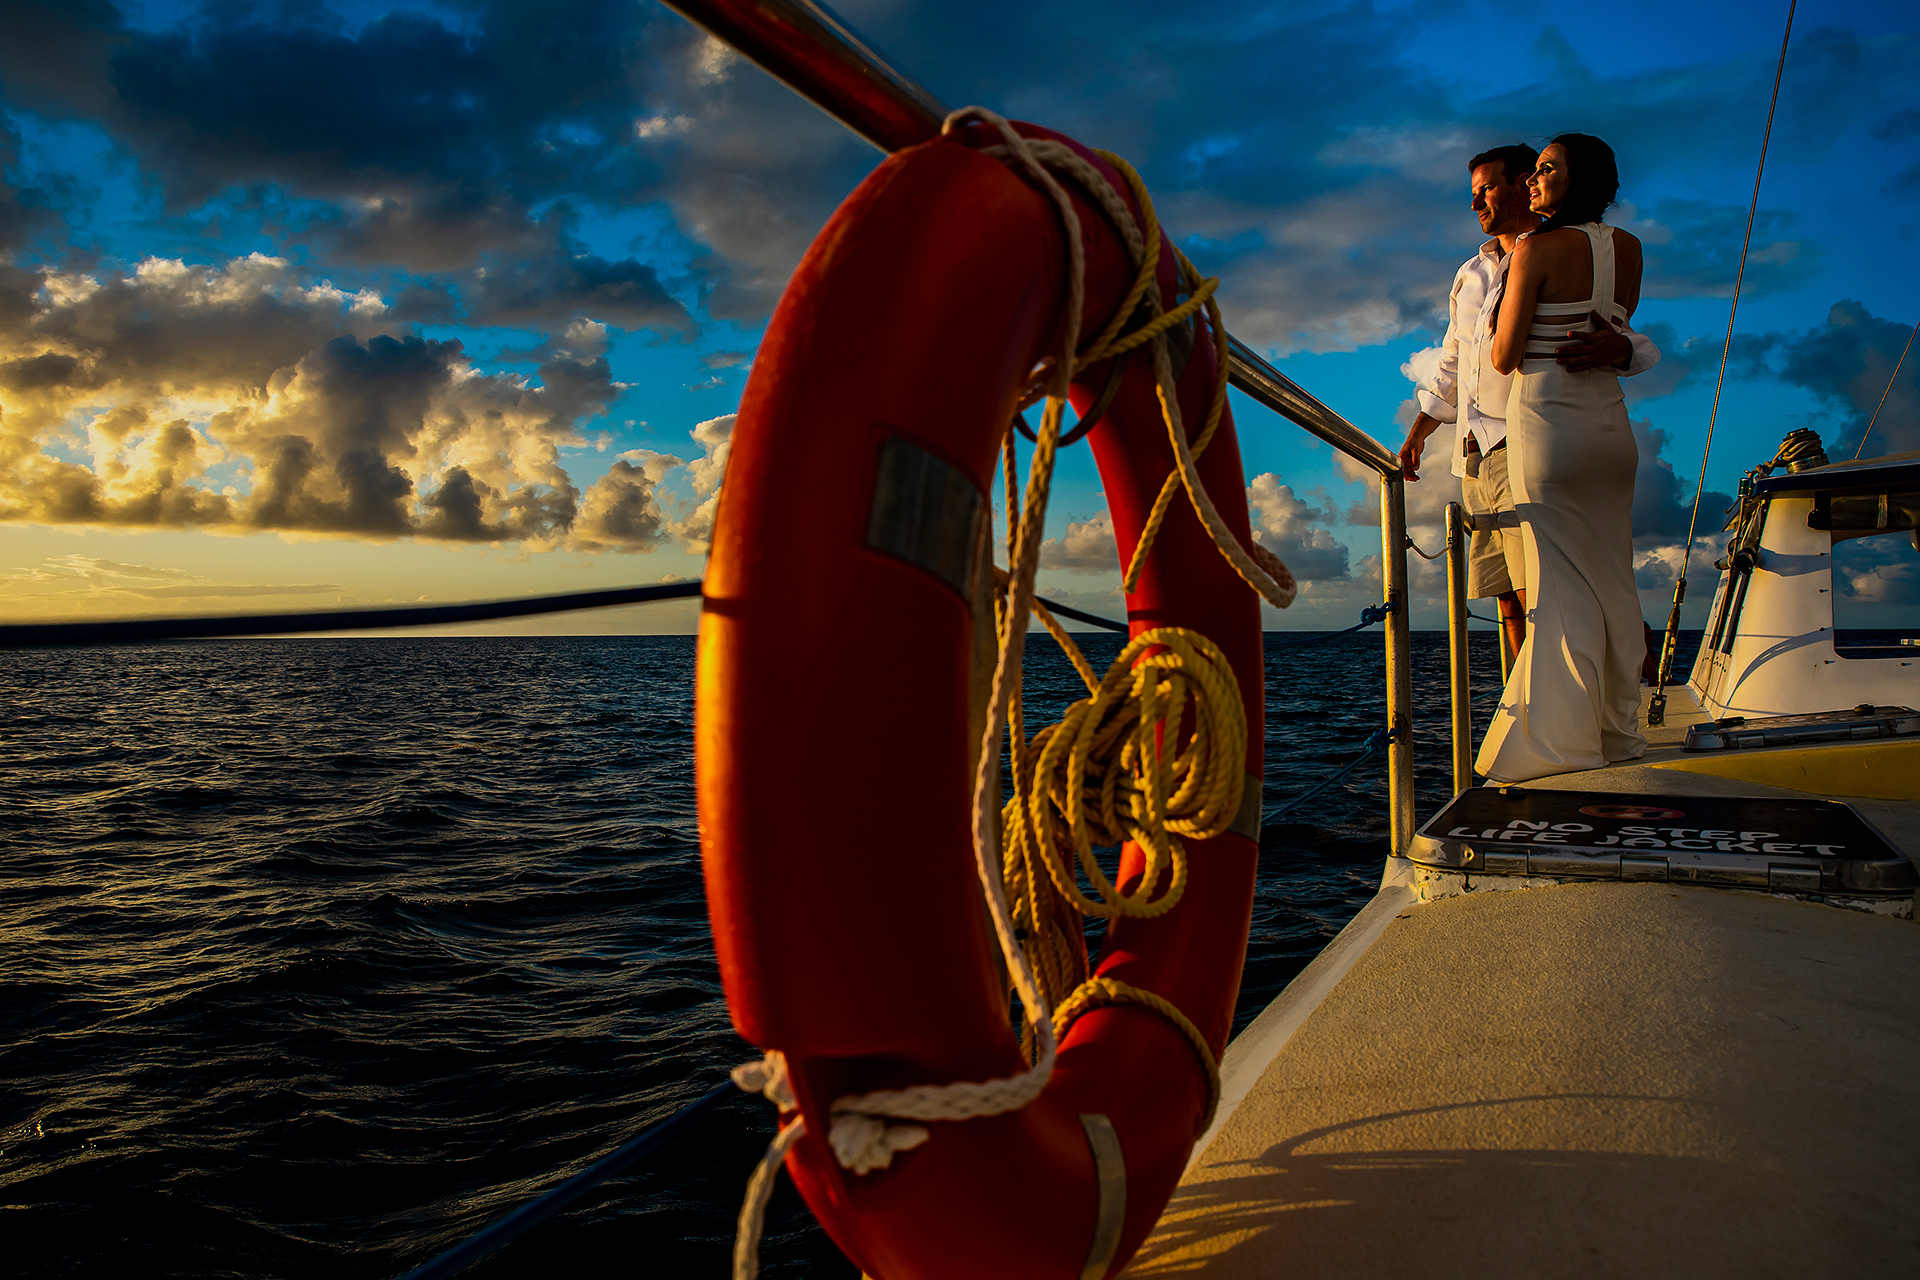 Sunset Elopement Couple Portrait in St. Lucia | The bride and groom-to-be watching the sunset